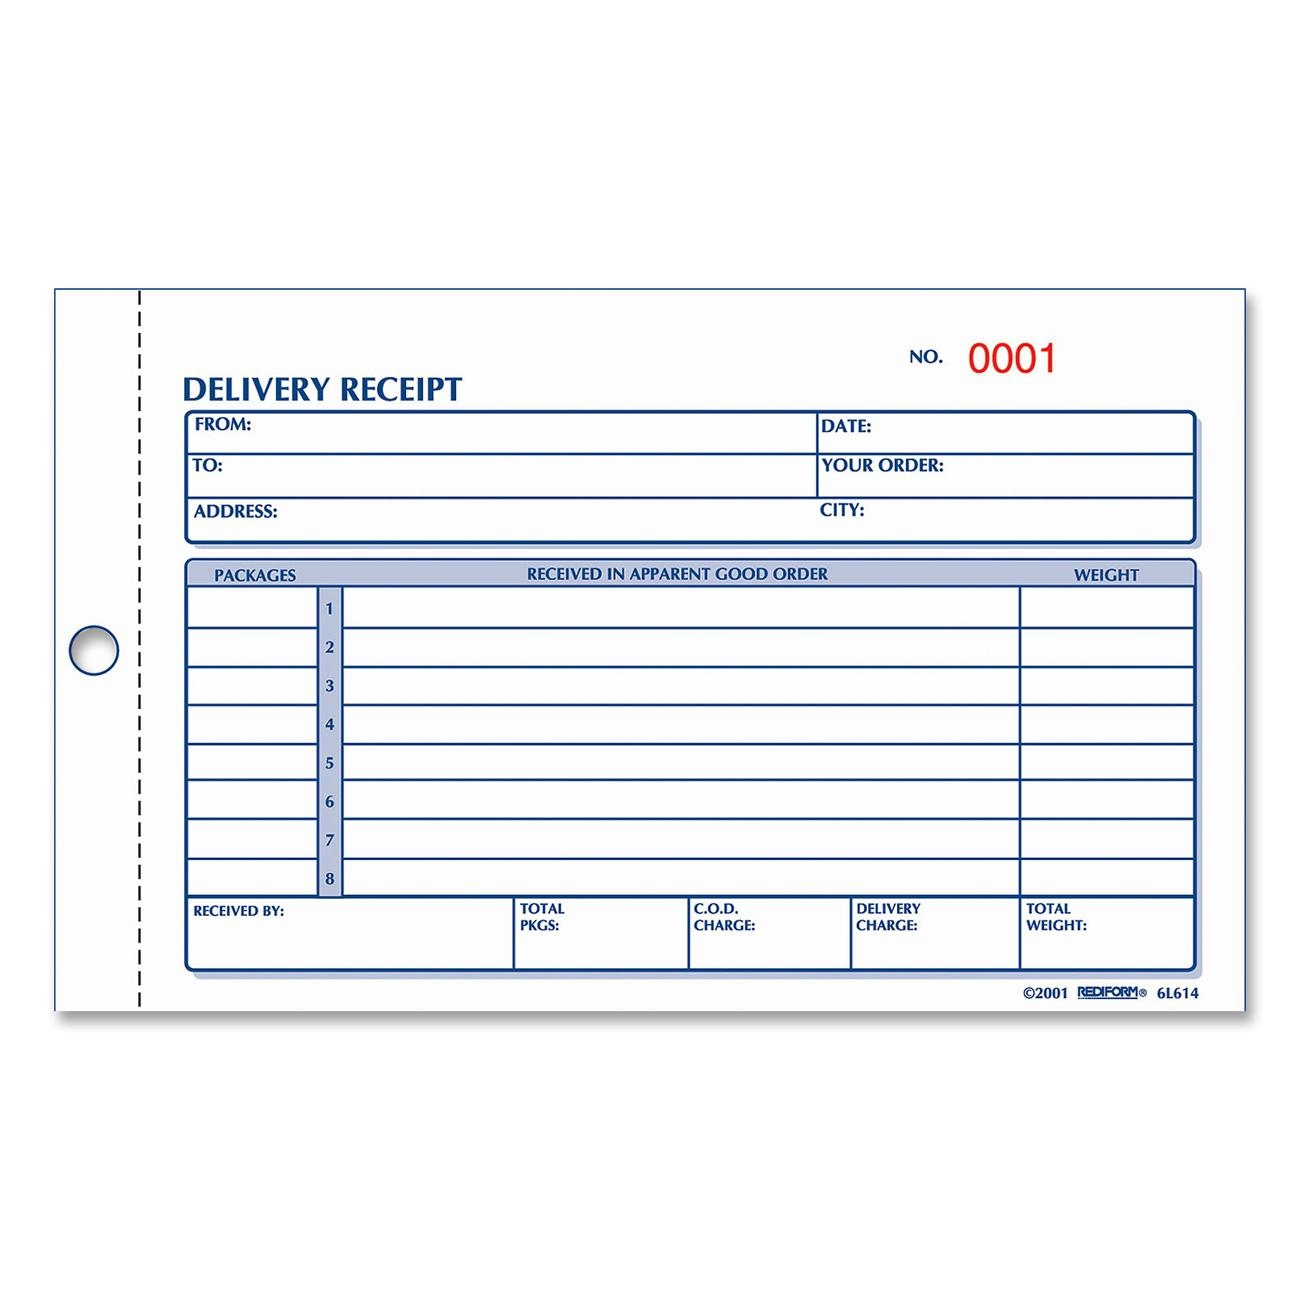 Example Tax Invoice Pdf Rediform Delivery Receipt Book   Sheets   Part  Carbonless  Quick Invoice Software with Free Dealer Invoice Price Canada Pdf Rediform Delivery Receipt Book   Sheets   Part  Carbonless    X  Form Size  Each L  Walmartcom Receipt For Payment Template Pdf